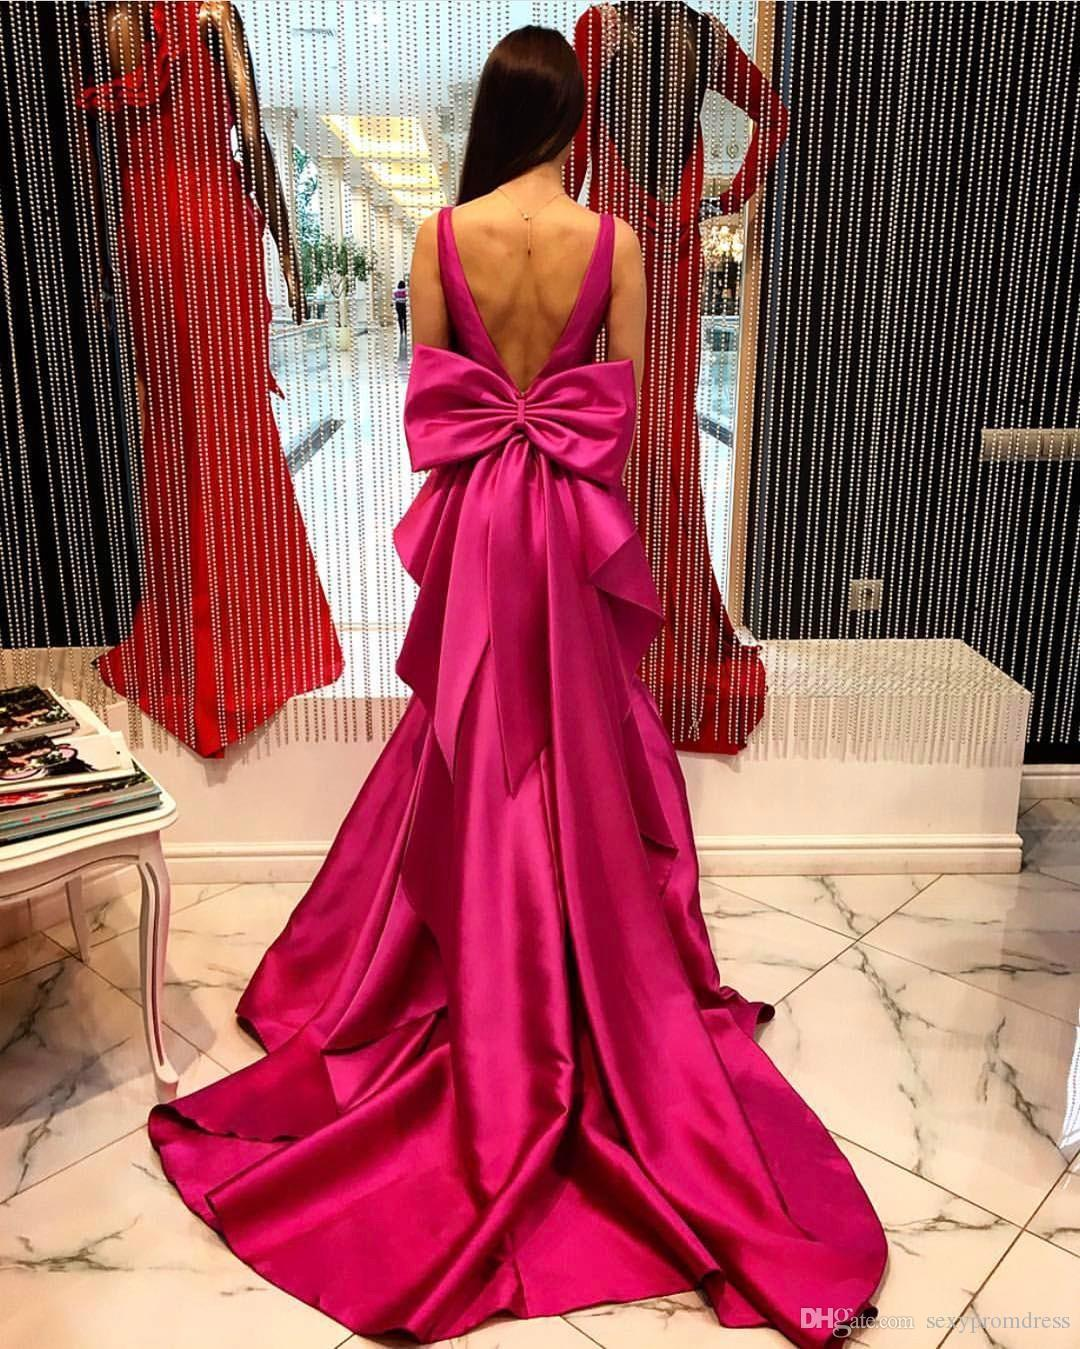 Fushia Backless Satin Evening Dresses 2018 Deep V Neck Sleeveless Mermaid Prom Dresses With Big Bow Floor Length Formal Party Dress